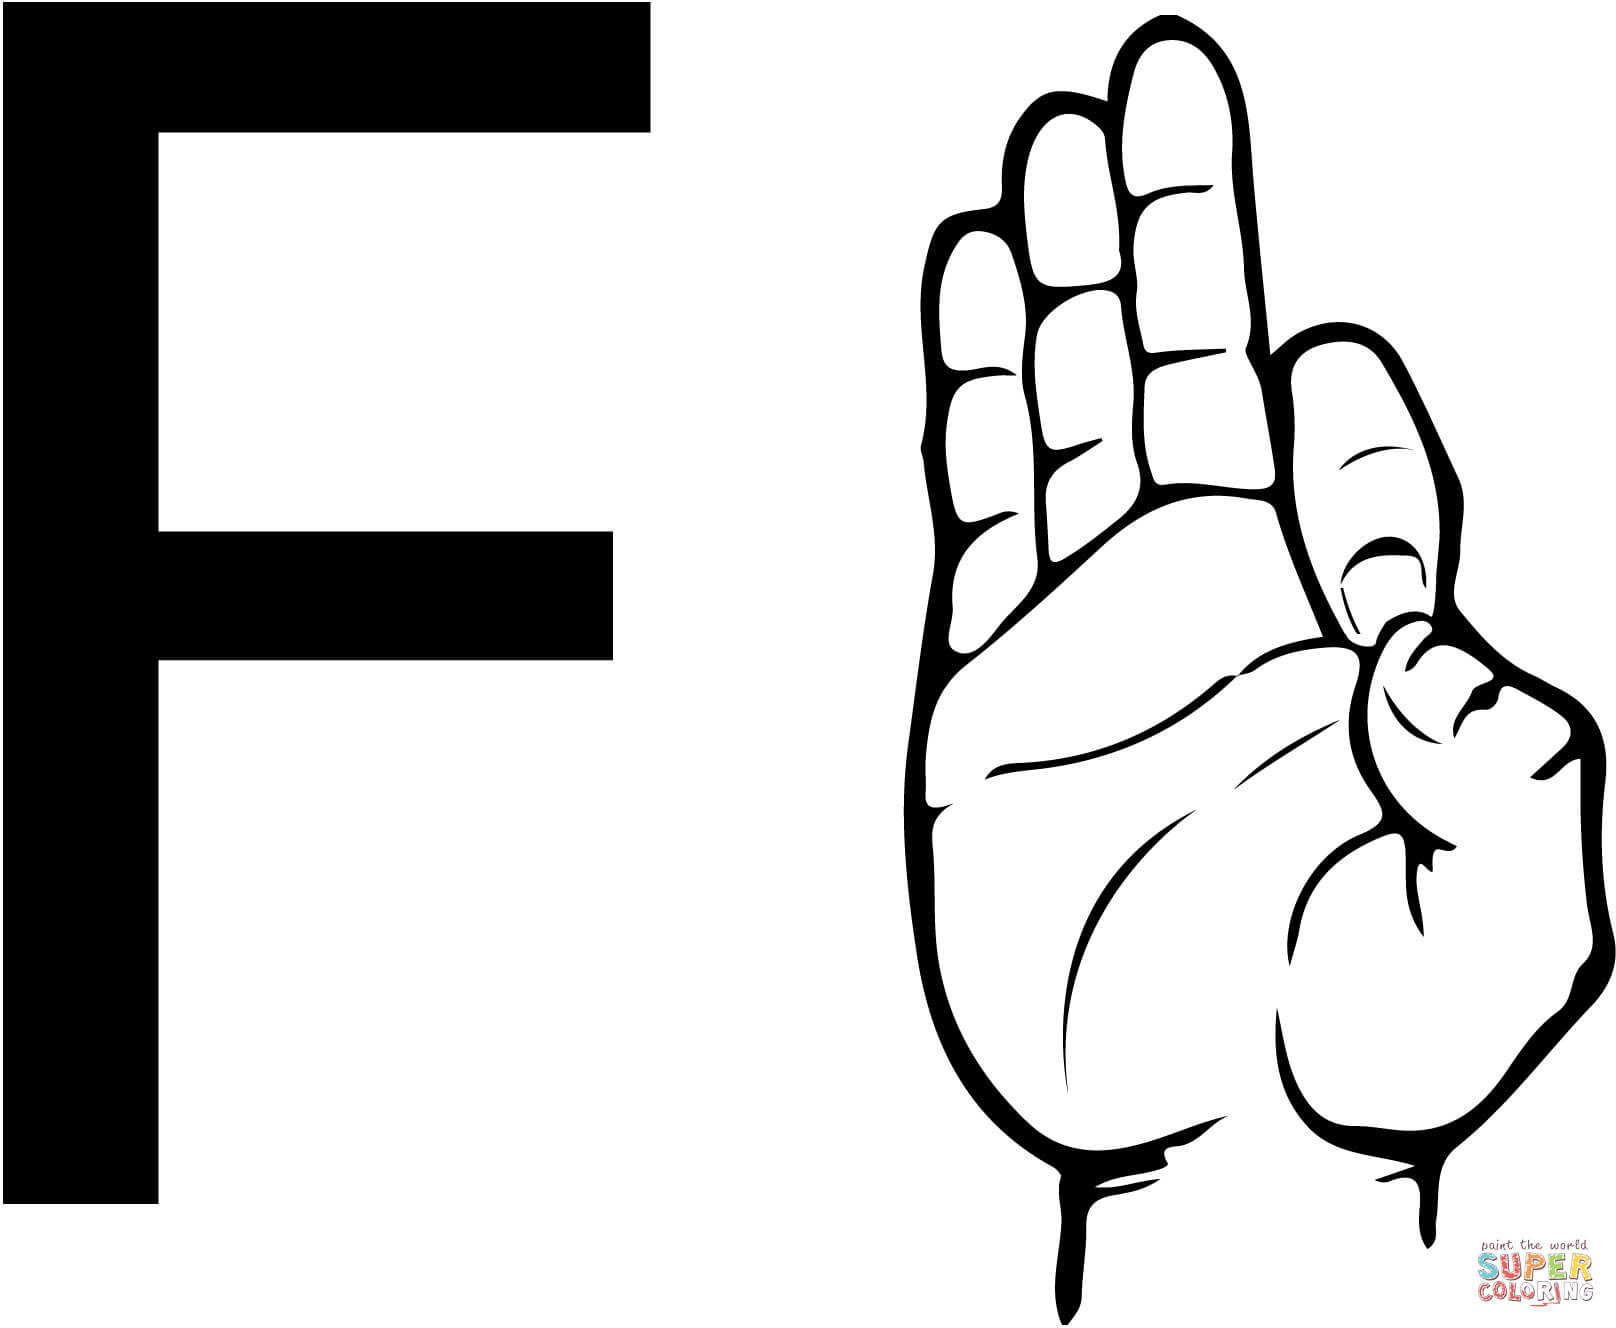 American Sign Language Worksheets Printable asl Sign Language Letter F Coloring Page